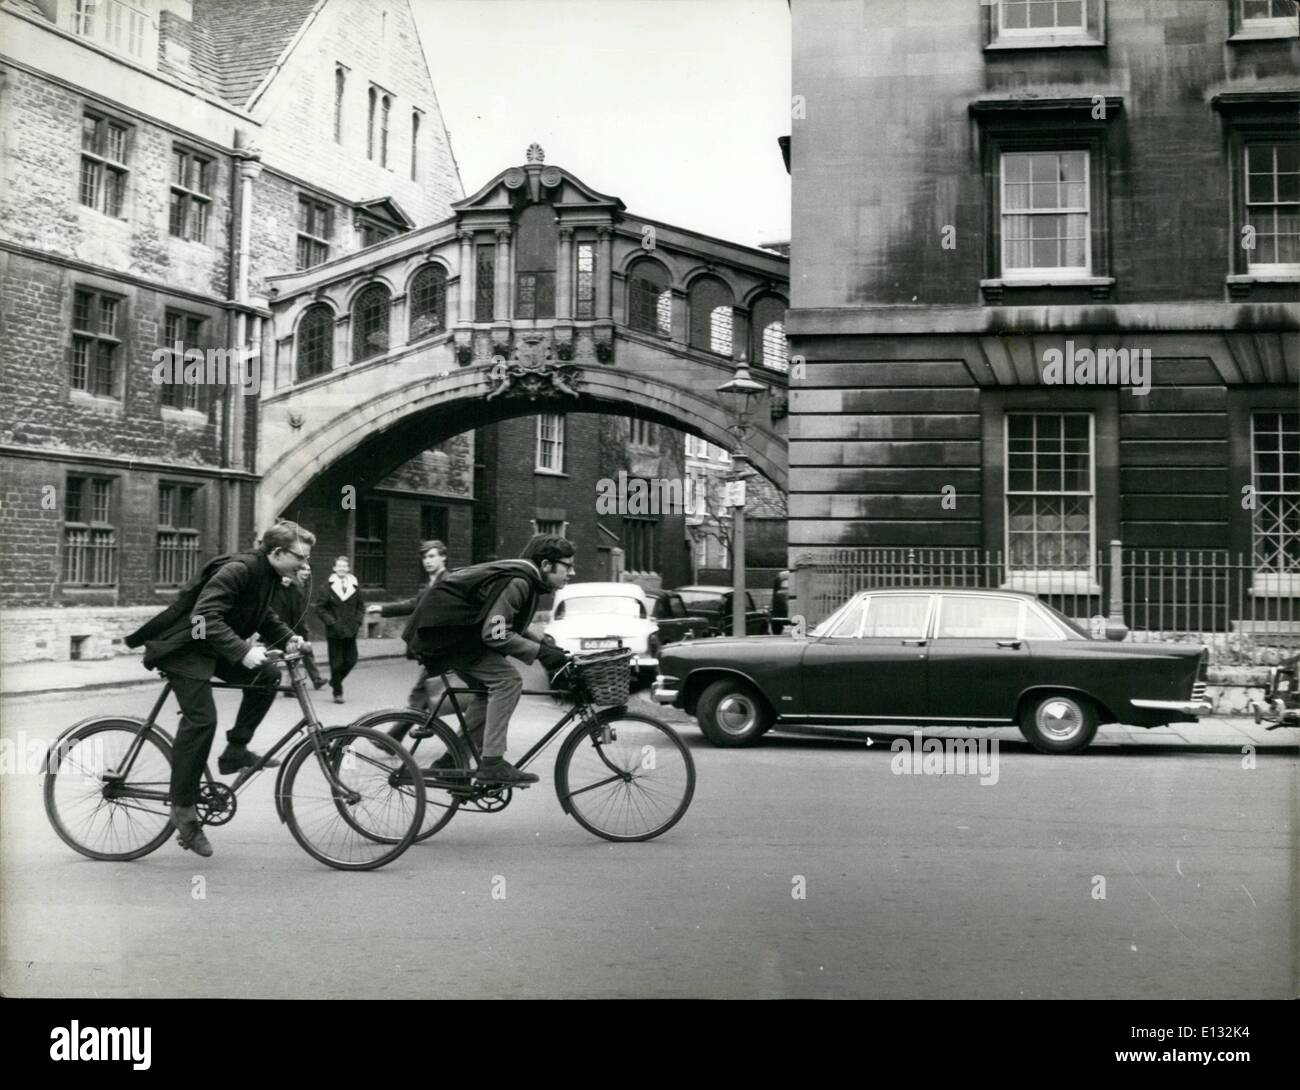 Feb. 26, 2012 - Bike and the Bridge of Signs... Bicycles are the rule in Oxford - and Colin Day (right) and Charles Garner use them to get to lectures and tutorials out of college - but after years of use the turn into mouldering, forgotten wrecks... Before... and see 25 for after. - Stock Image